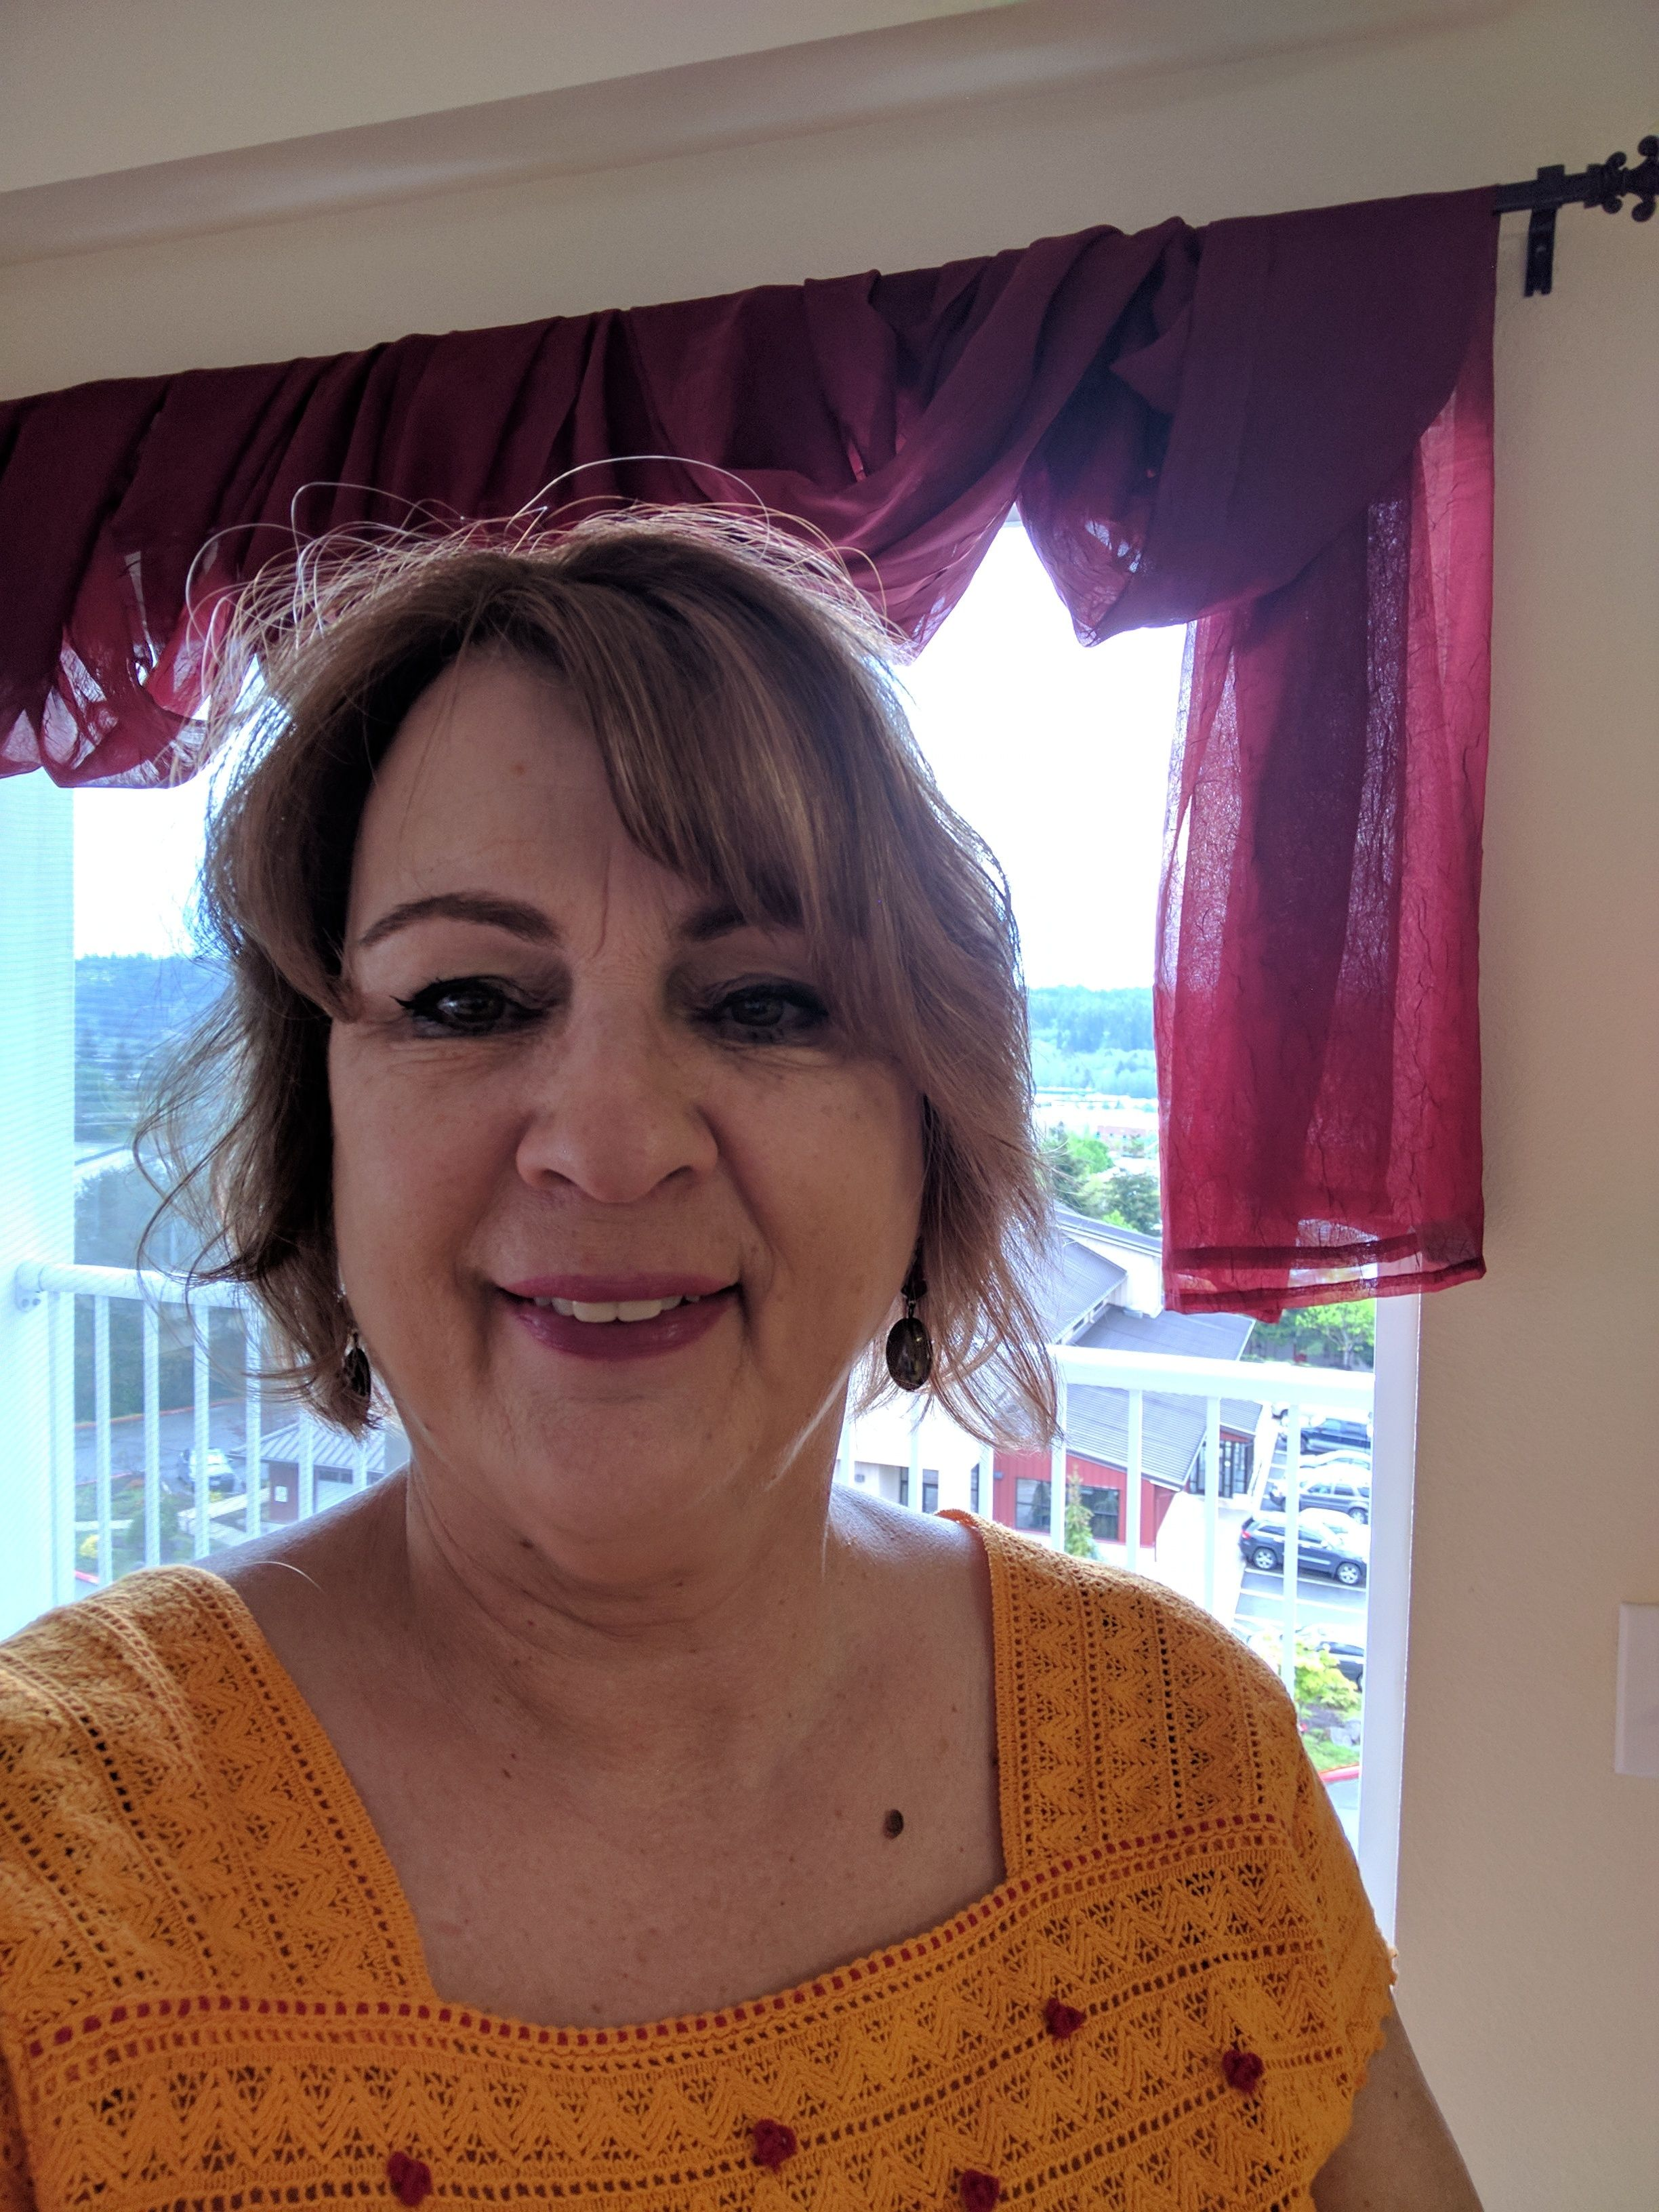 meet poulsbo singles Washington vegetarian singles, free wa vegan ads, raw food ads and  vegetarian dating, for a  i do like meeting new people and am really good at  introducing myself to others and talking to anyone but a  living in poulsbo,  washington.